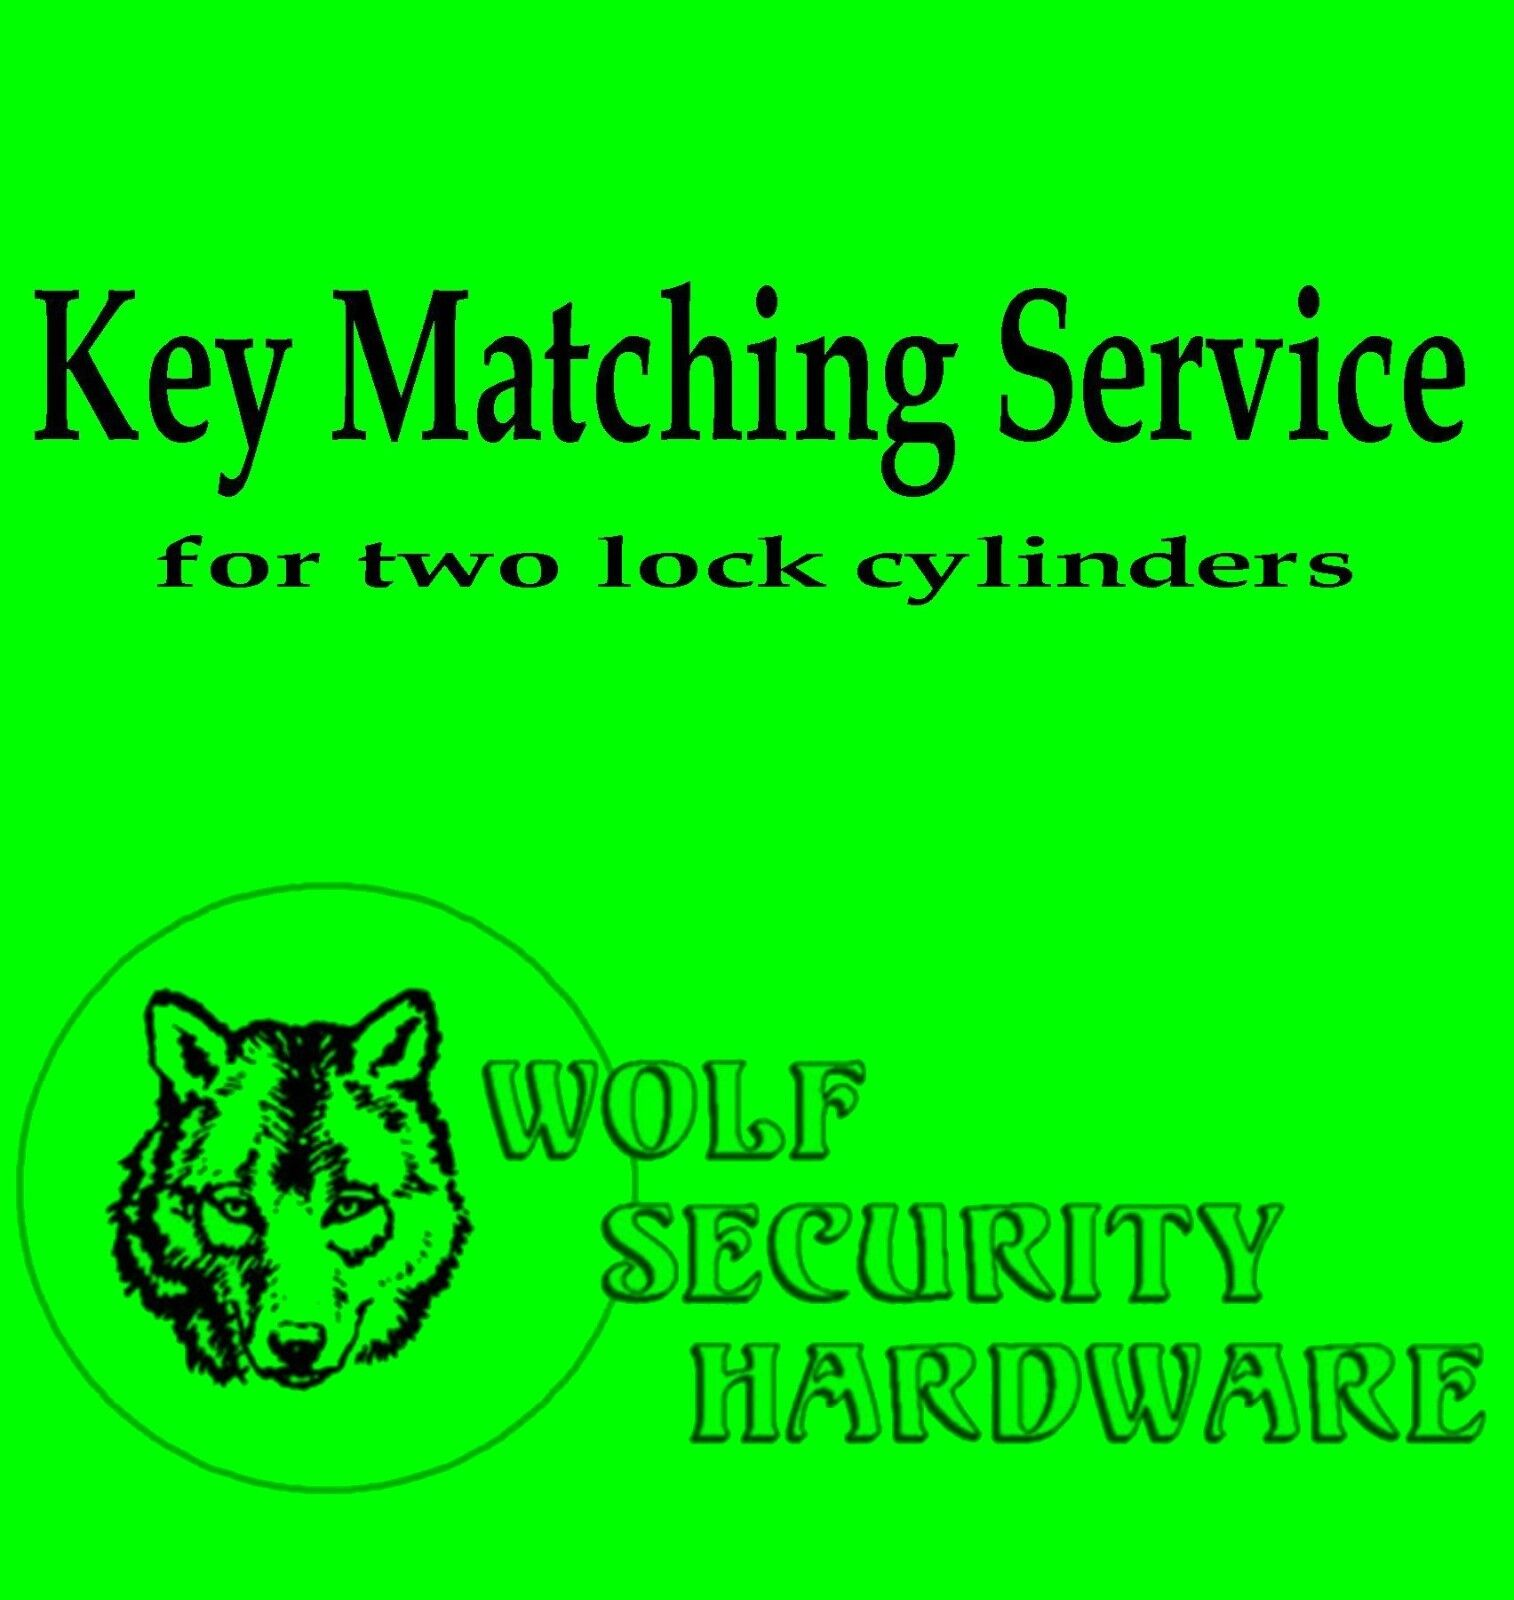 Key Matching Service Purchase After Pre Approval In Conjunction W/Lock Purchase